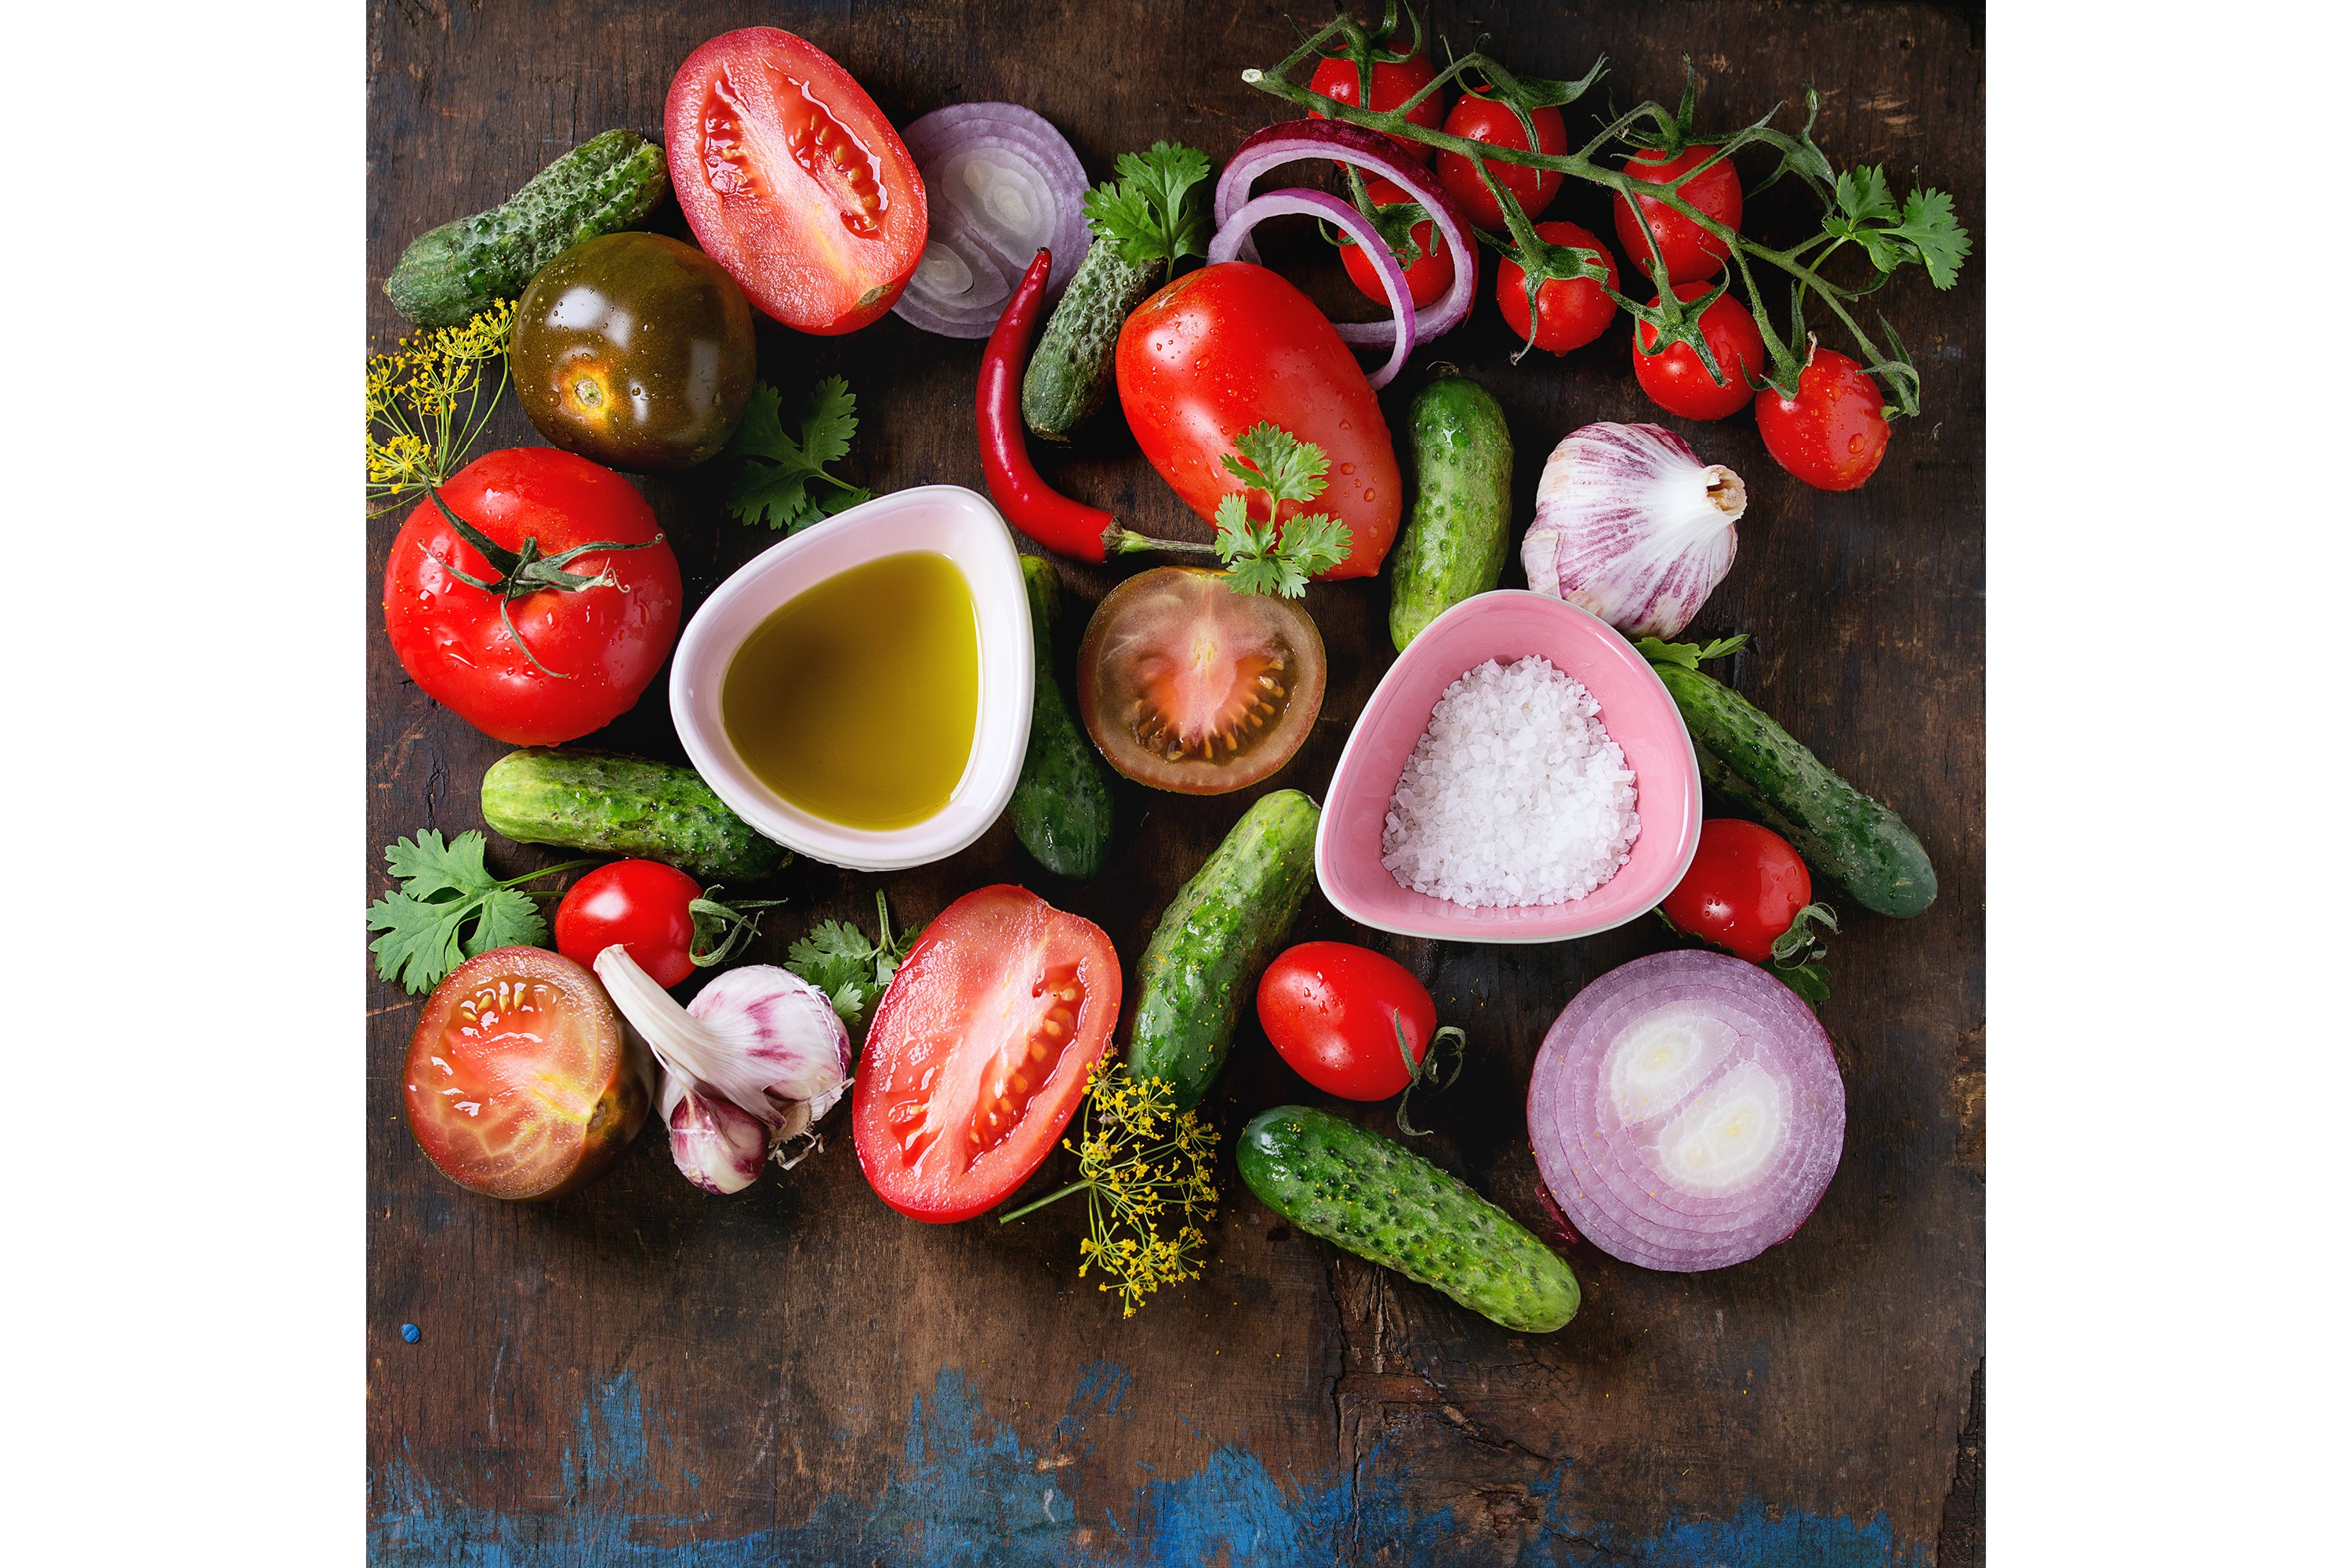 Background with tomatoes and cucumbers example image 1